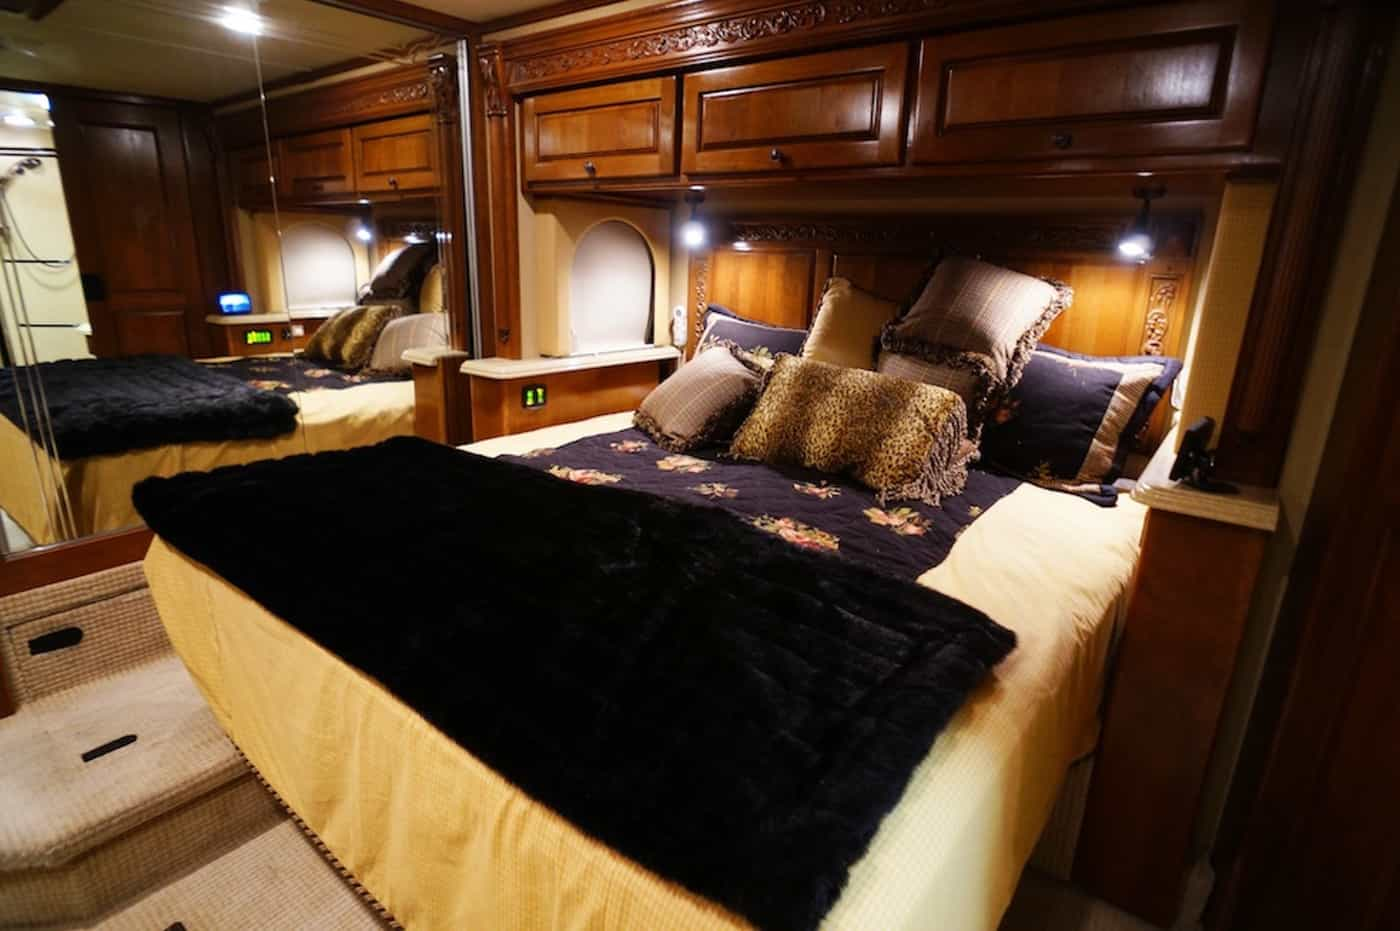 RV Bedroom Remodel Near Me